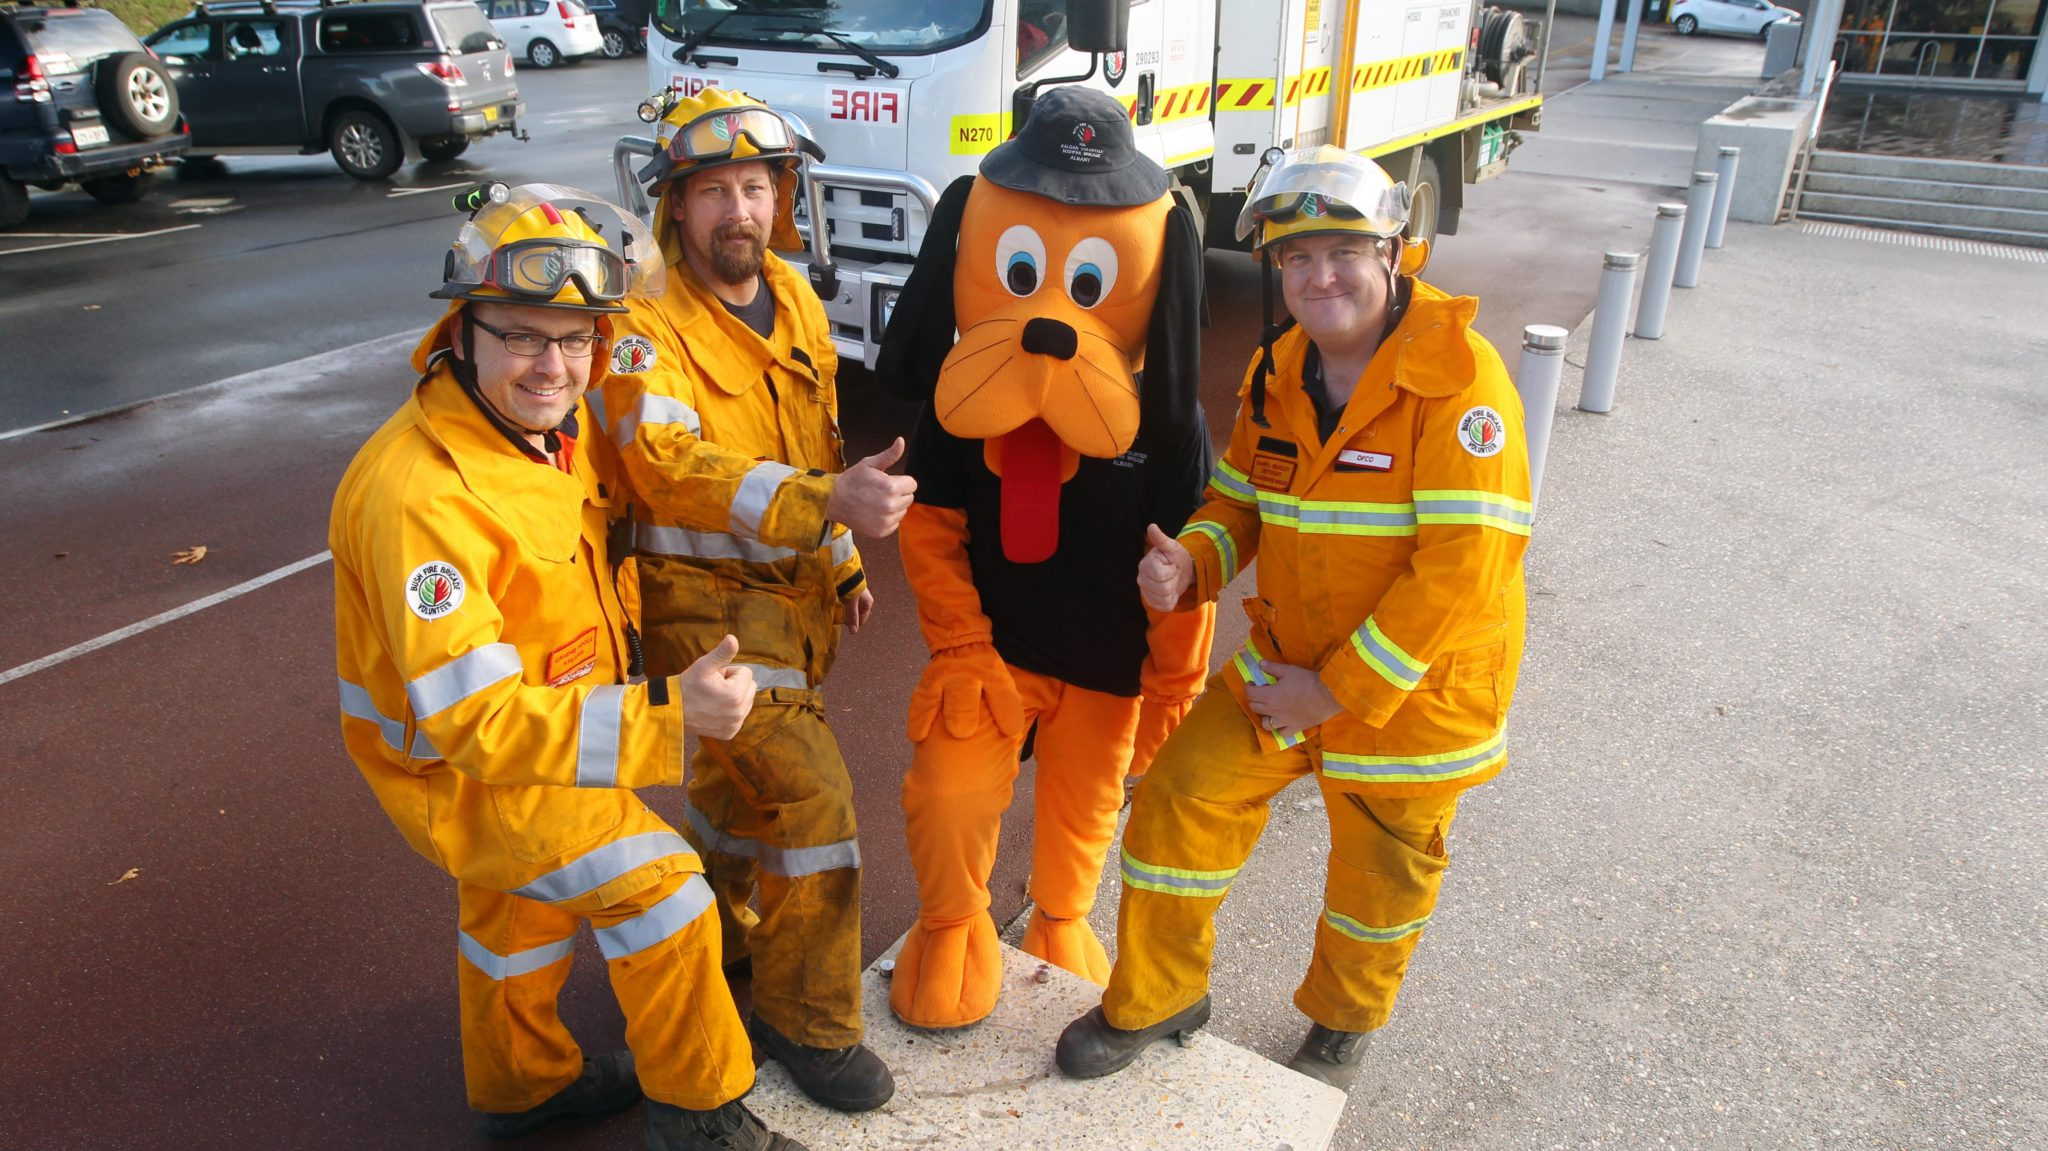 Kalgan Bushfire Brigade's Graeme Poole, Kevin Bransby and Darryl Bradley.Picture: Picture: Laurie Benson, Laurie Benson Albany Advertiser